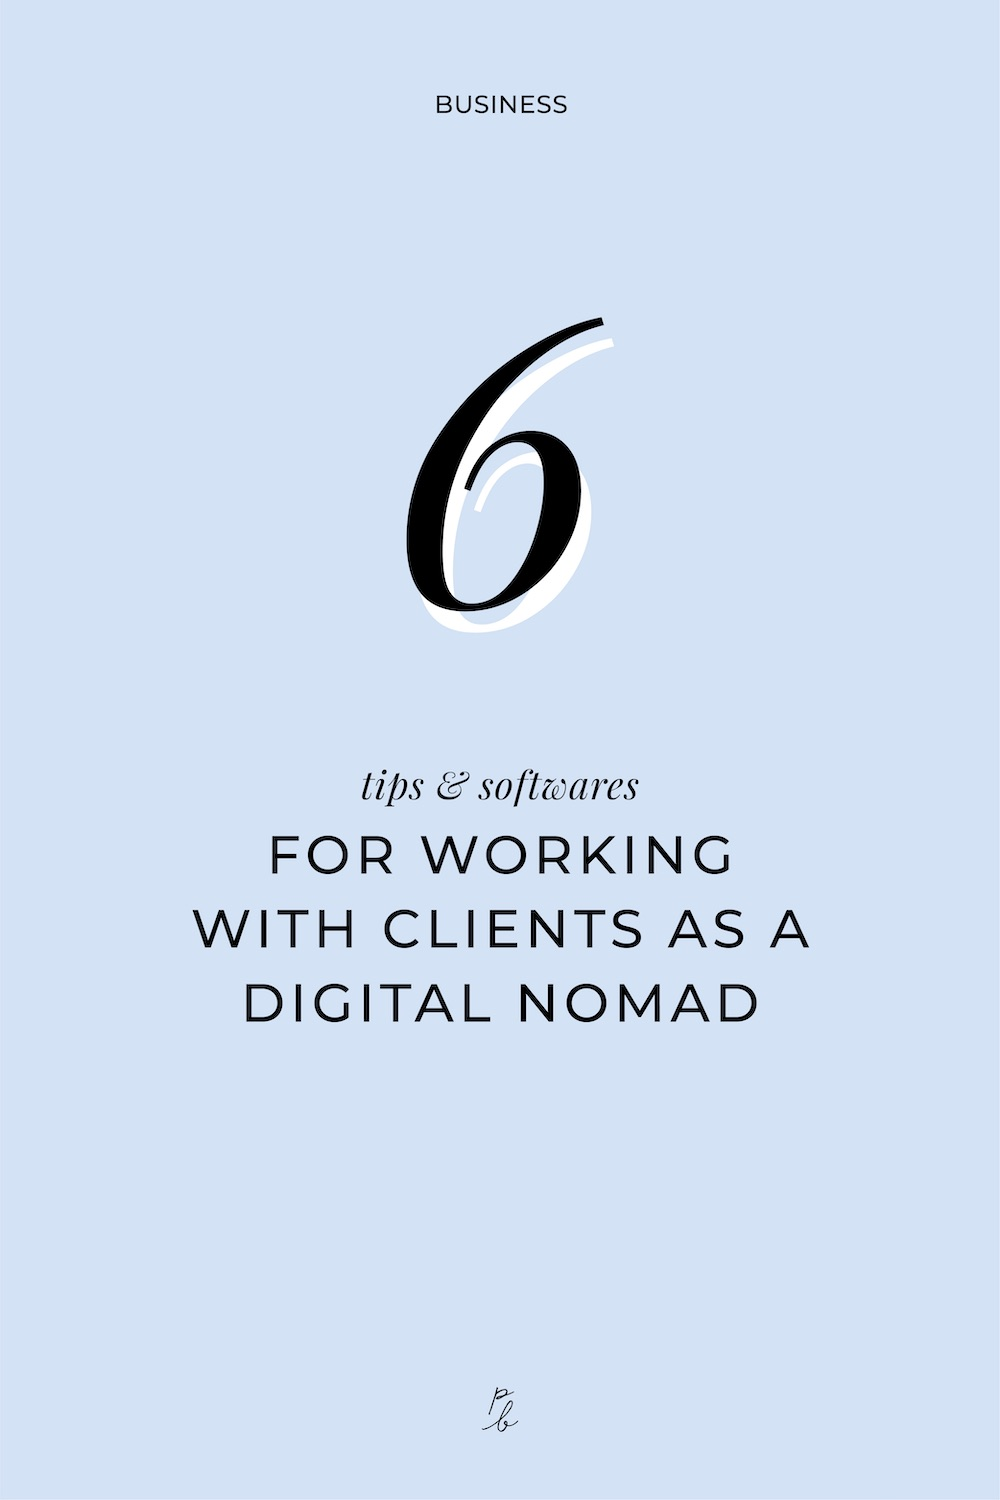 4-6 tips and softwares for working with clients as a digital nomad.jpg